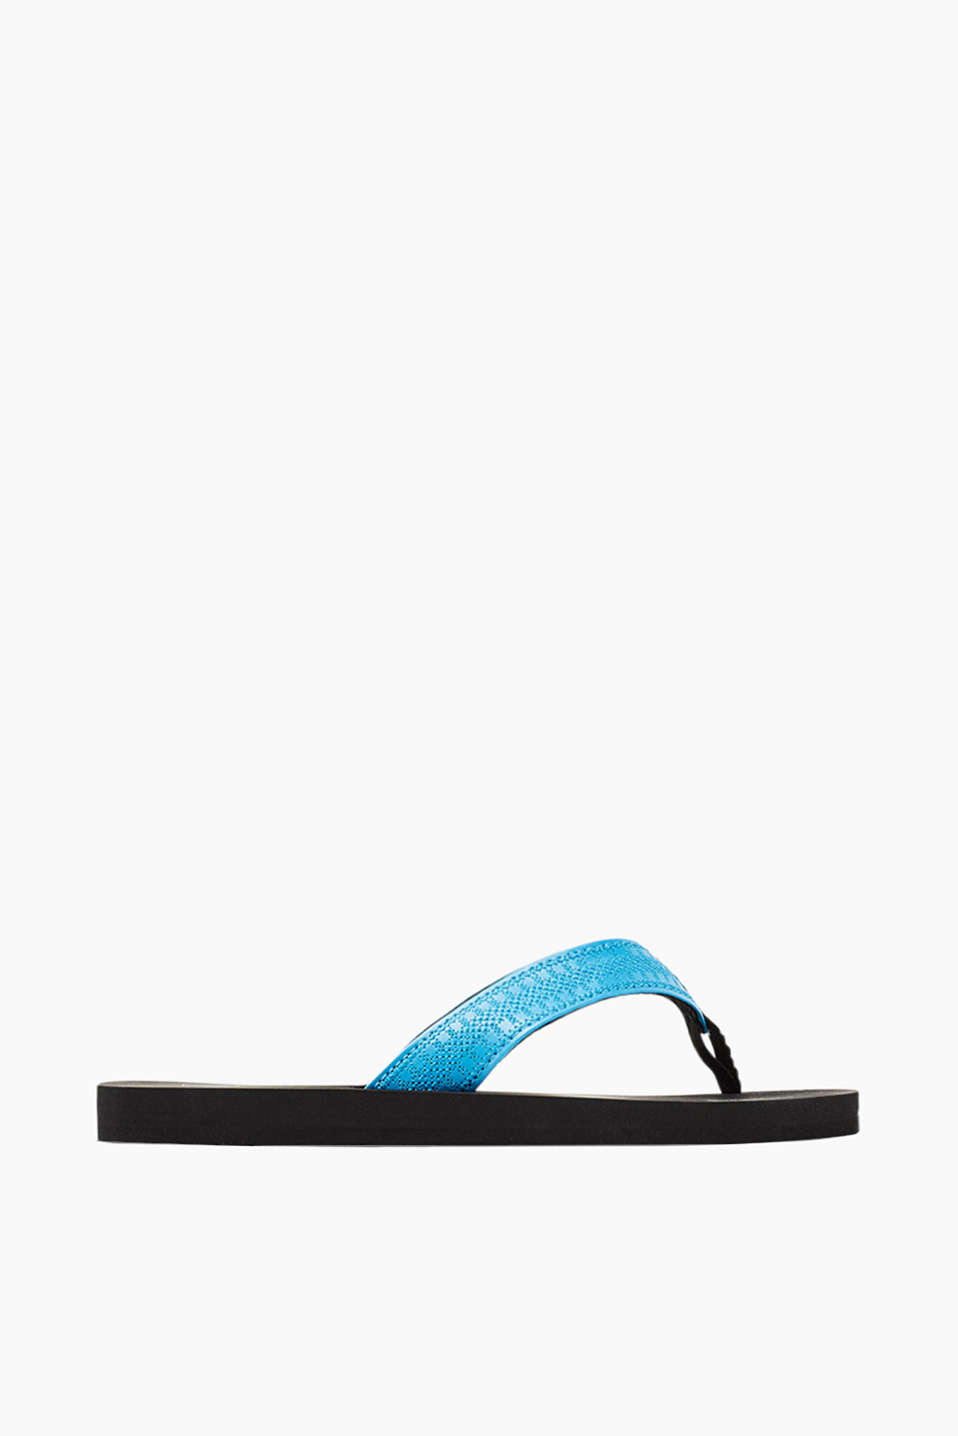 City slip slops with straps in perforated faux leather